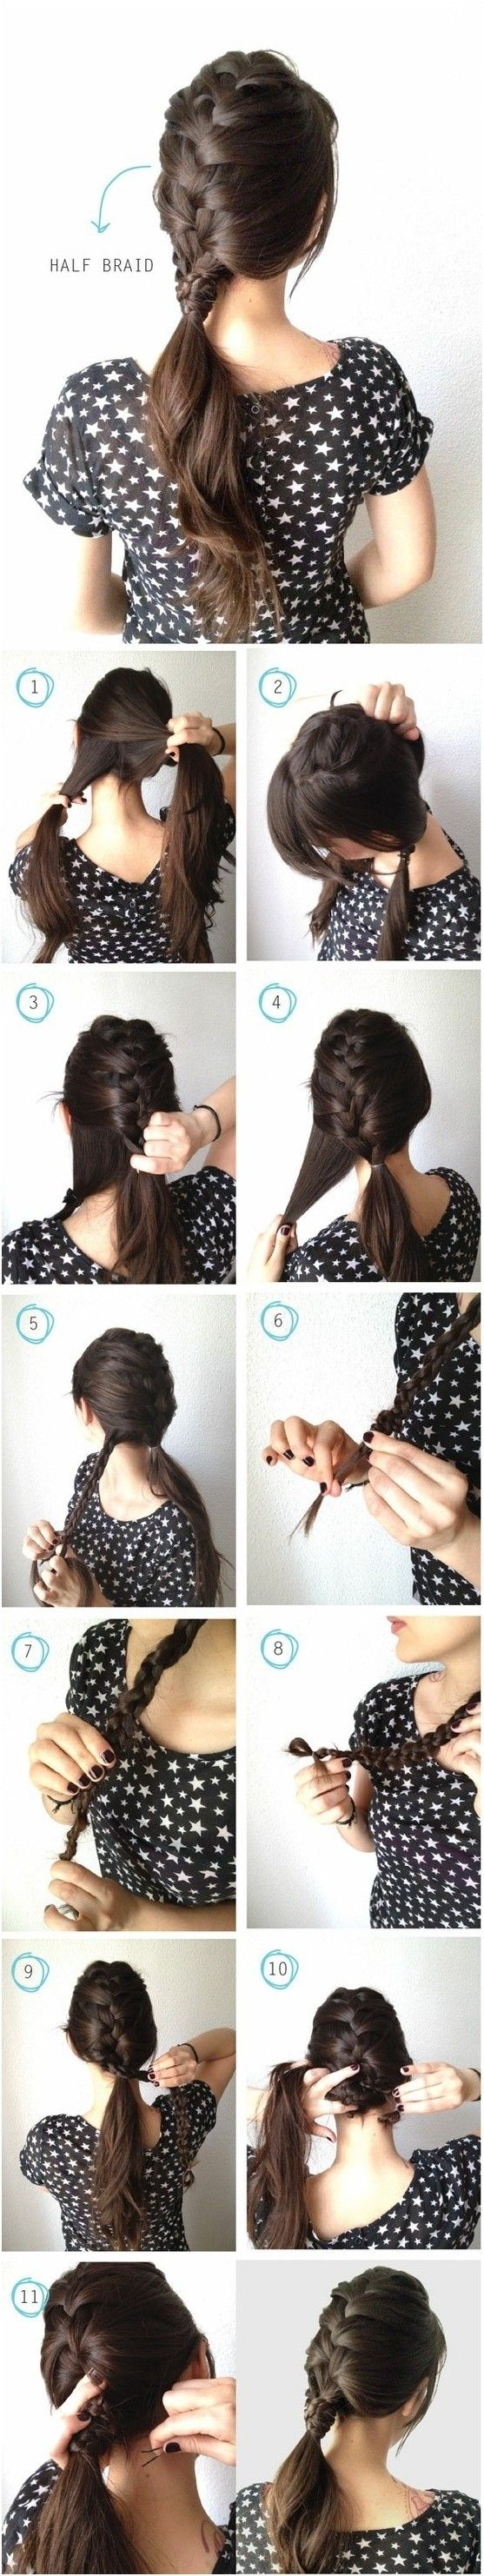 21 Braided Hair Tutorials | Gorgeous Hairstyles To Try by Makeup Tutorials at ma...